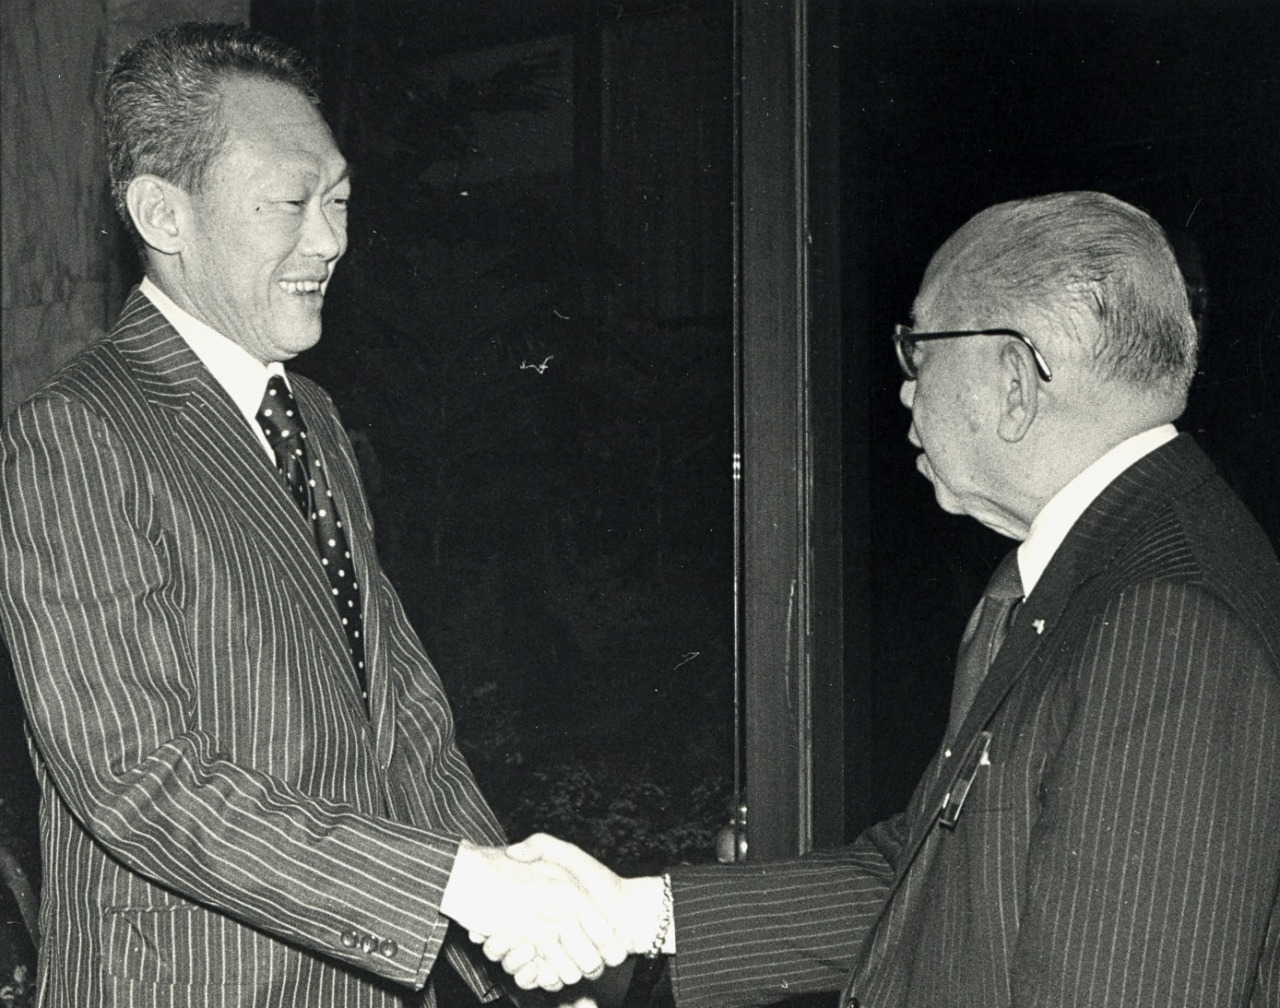 With Singapore's Prime Minister Lee Kuan Yew at the 10th ASEAN Ministerial Meeting, Singapore, July 1977.